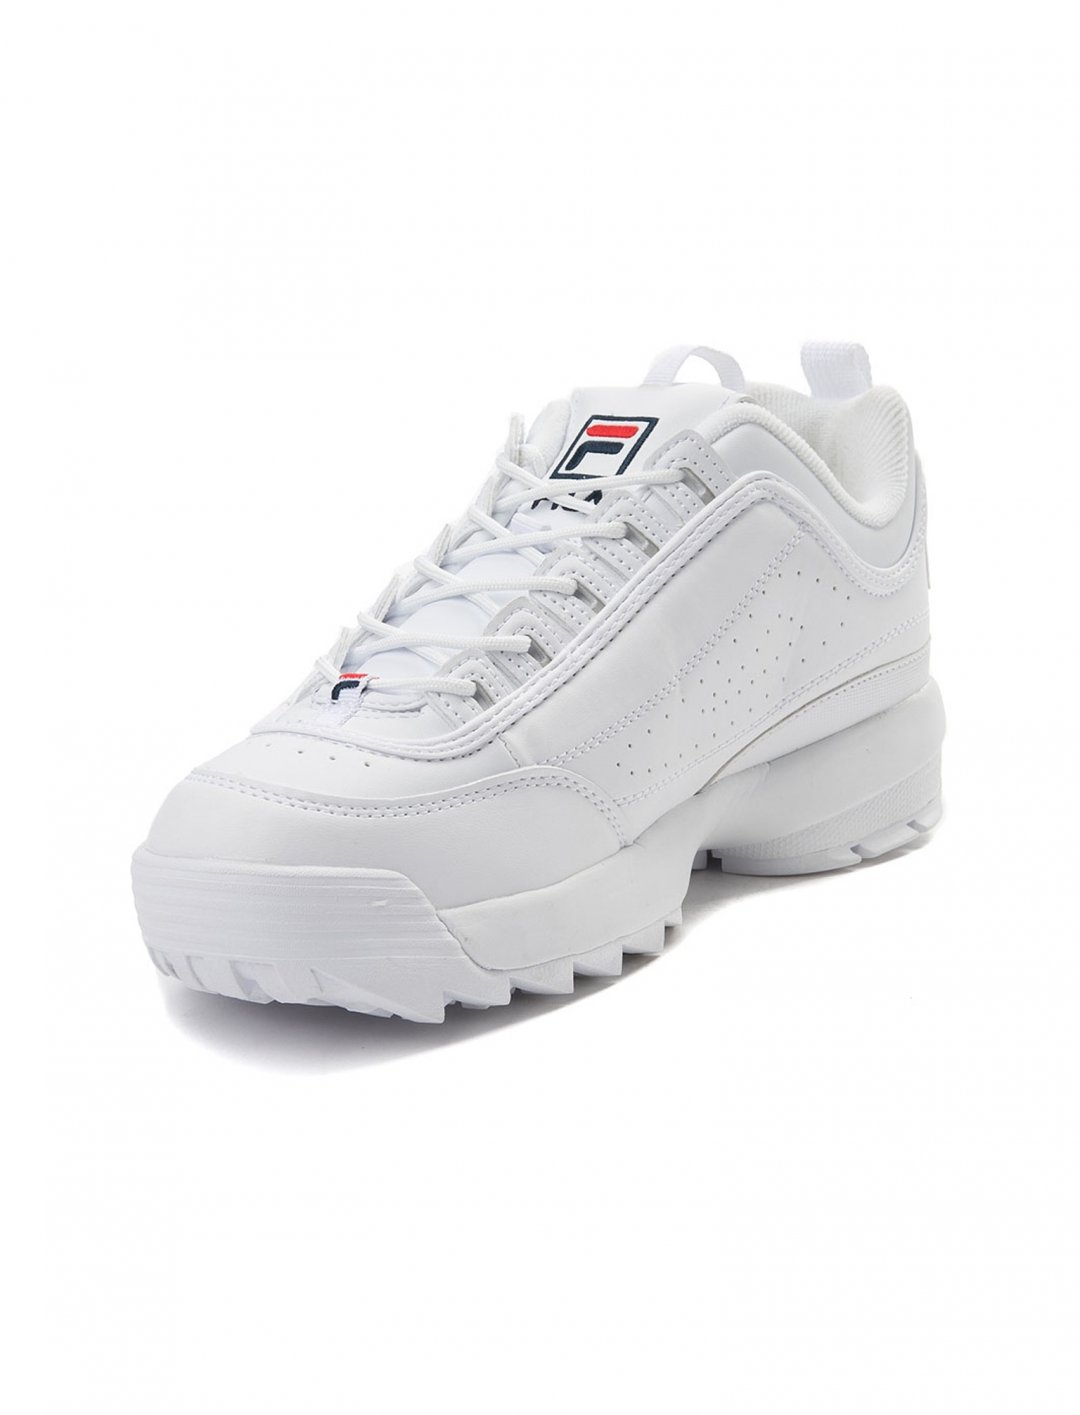 Myles' Sneakers Shoes FILA